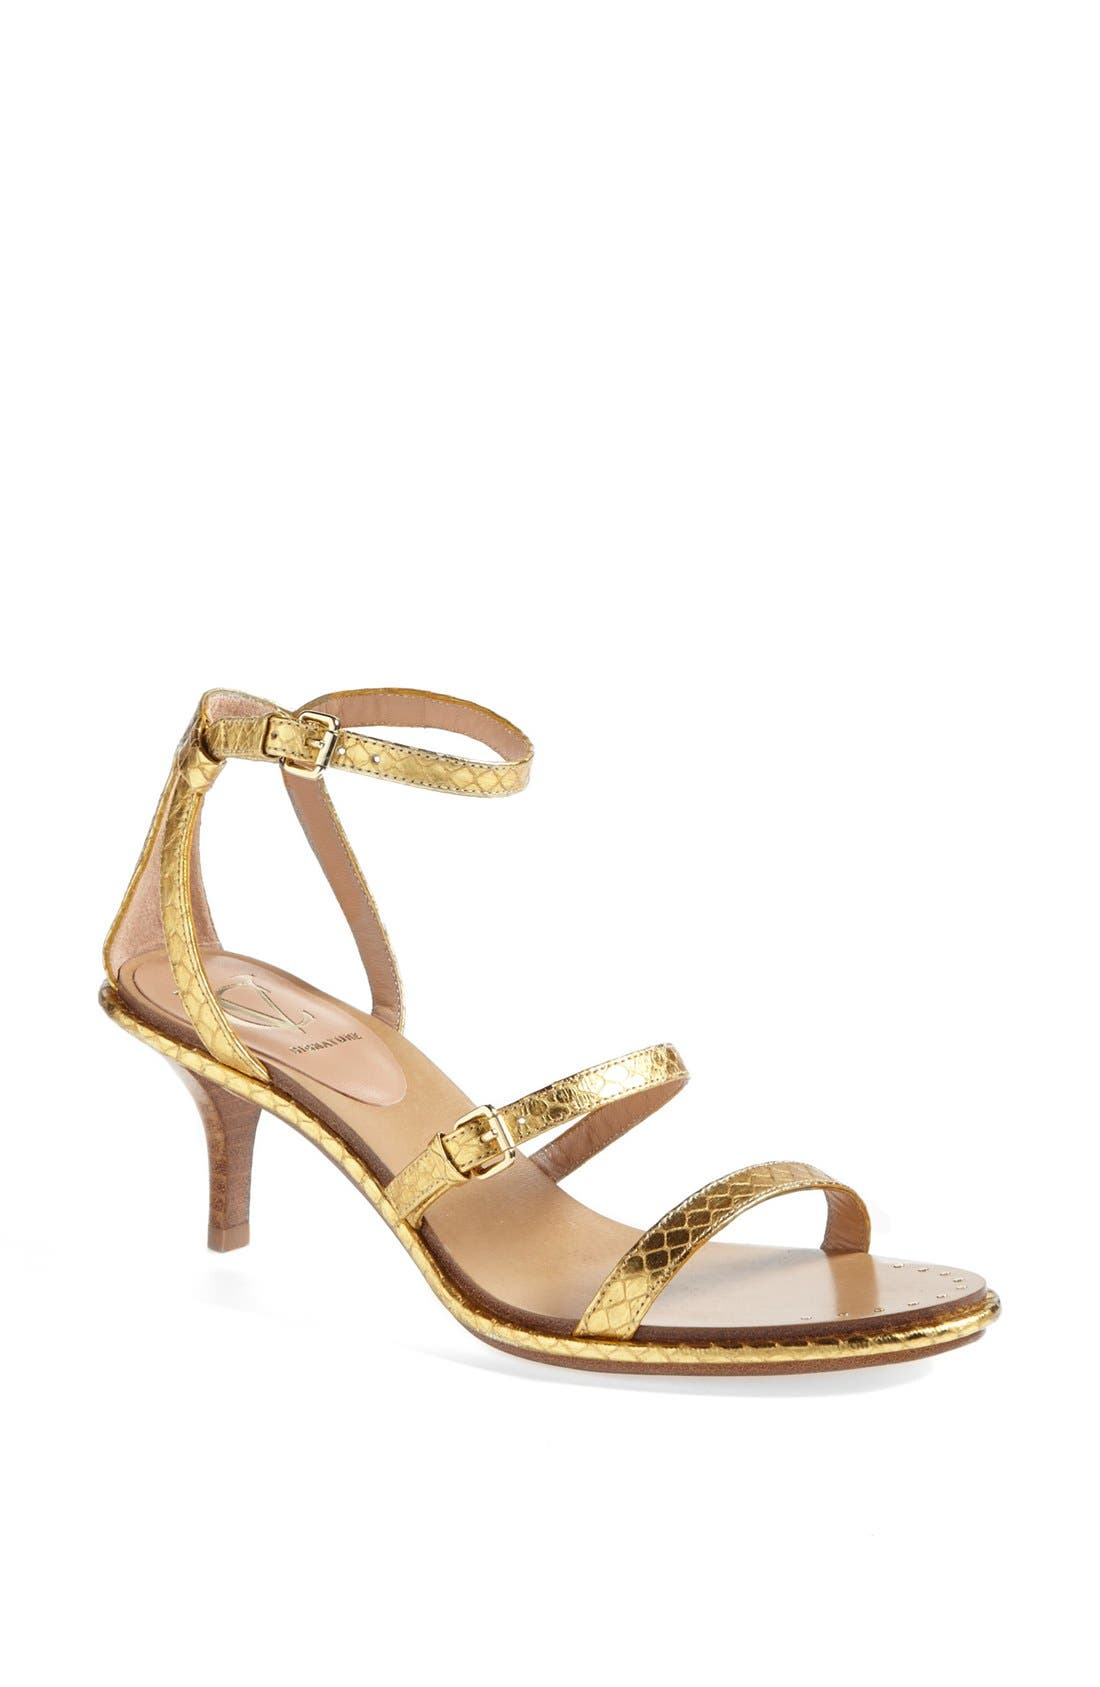 Alternate Image 1 Selected - VC Signature 'Hilarie' Sandal